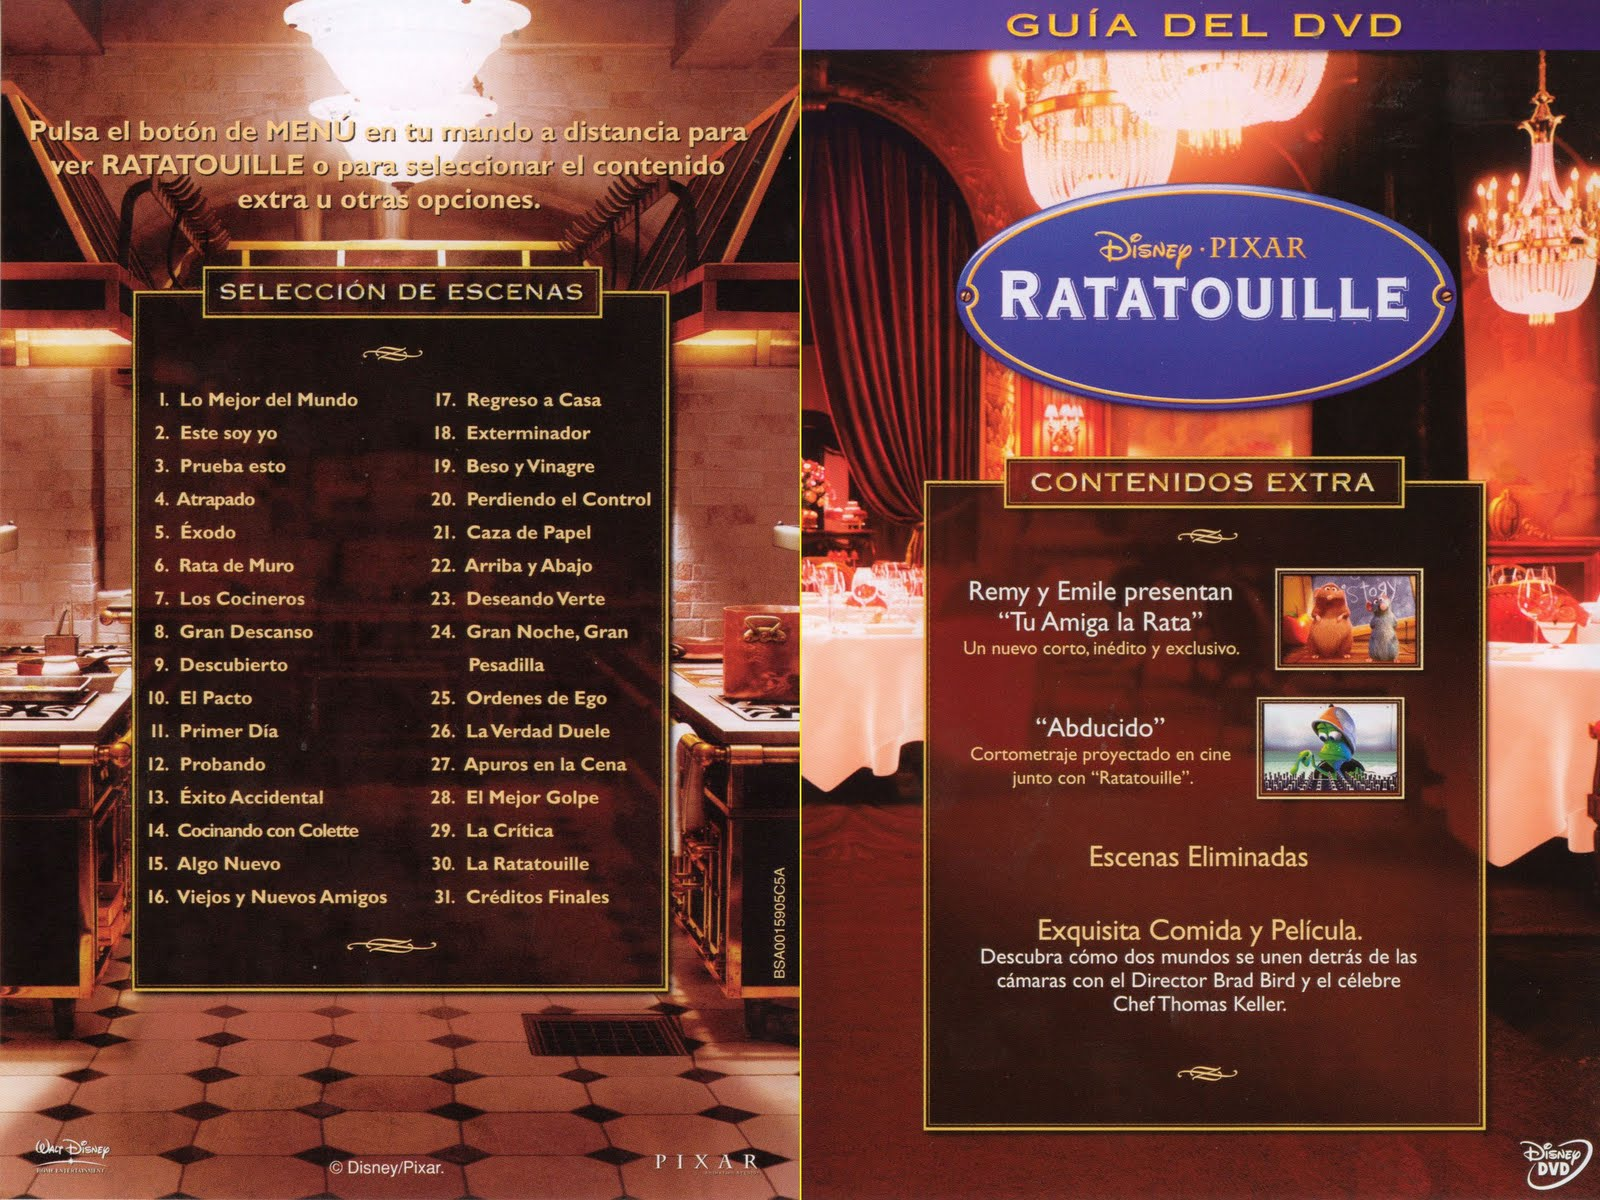 RatatouilleRatatouille Dvd Menu